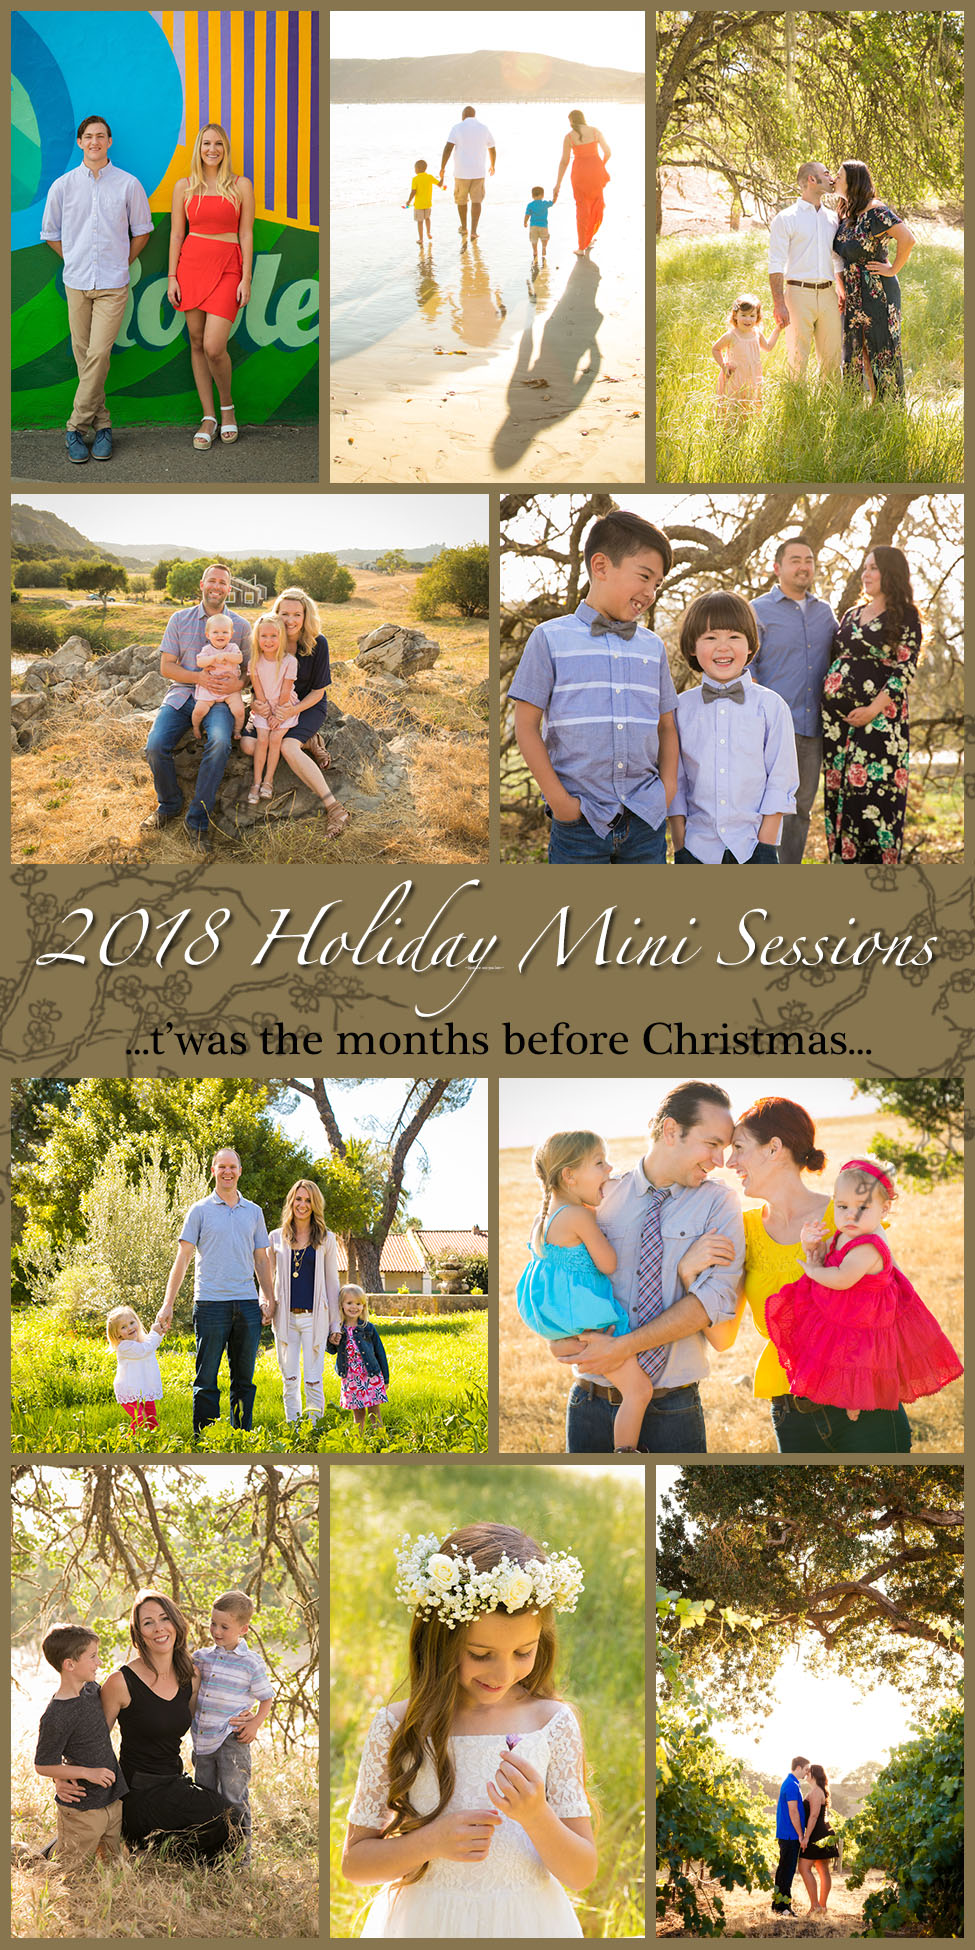 2018 Holiday Mini Sessions.jpg